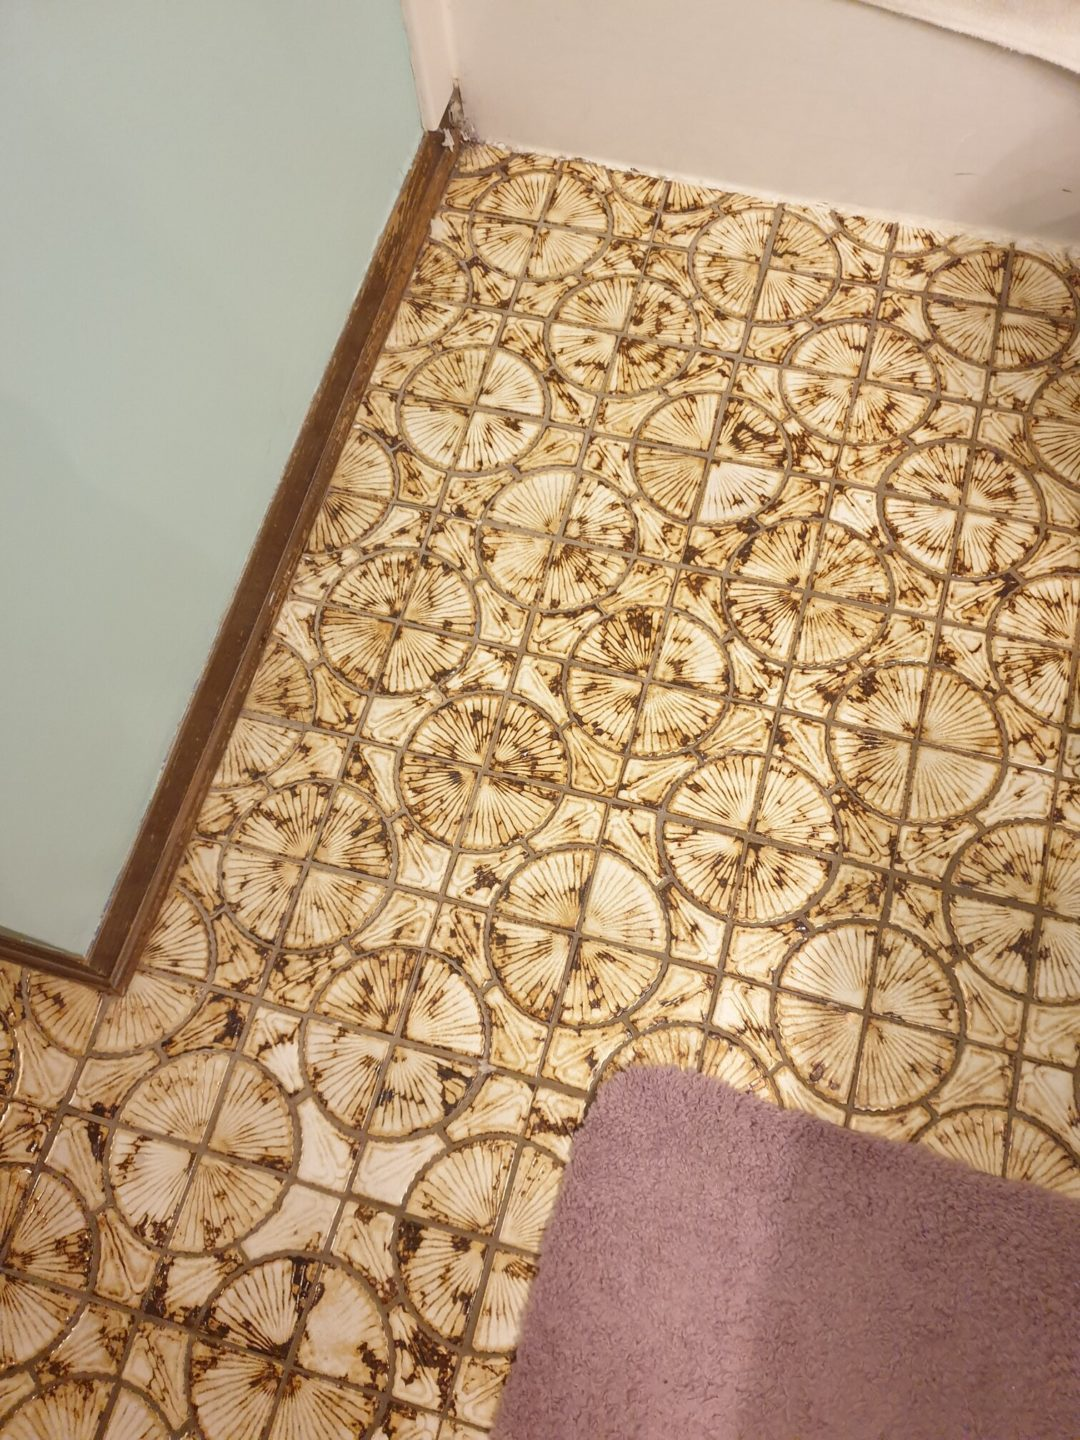 This floor is older than my mom ugly floor contest entry photo